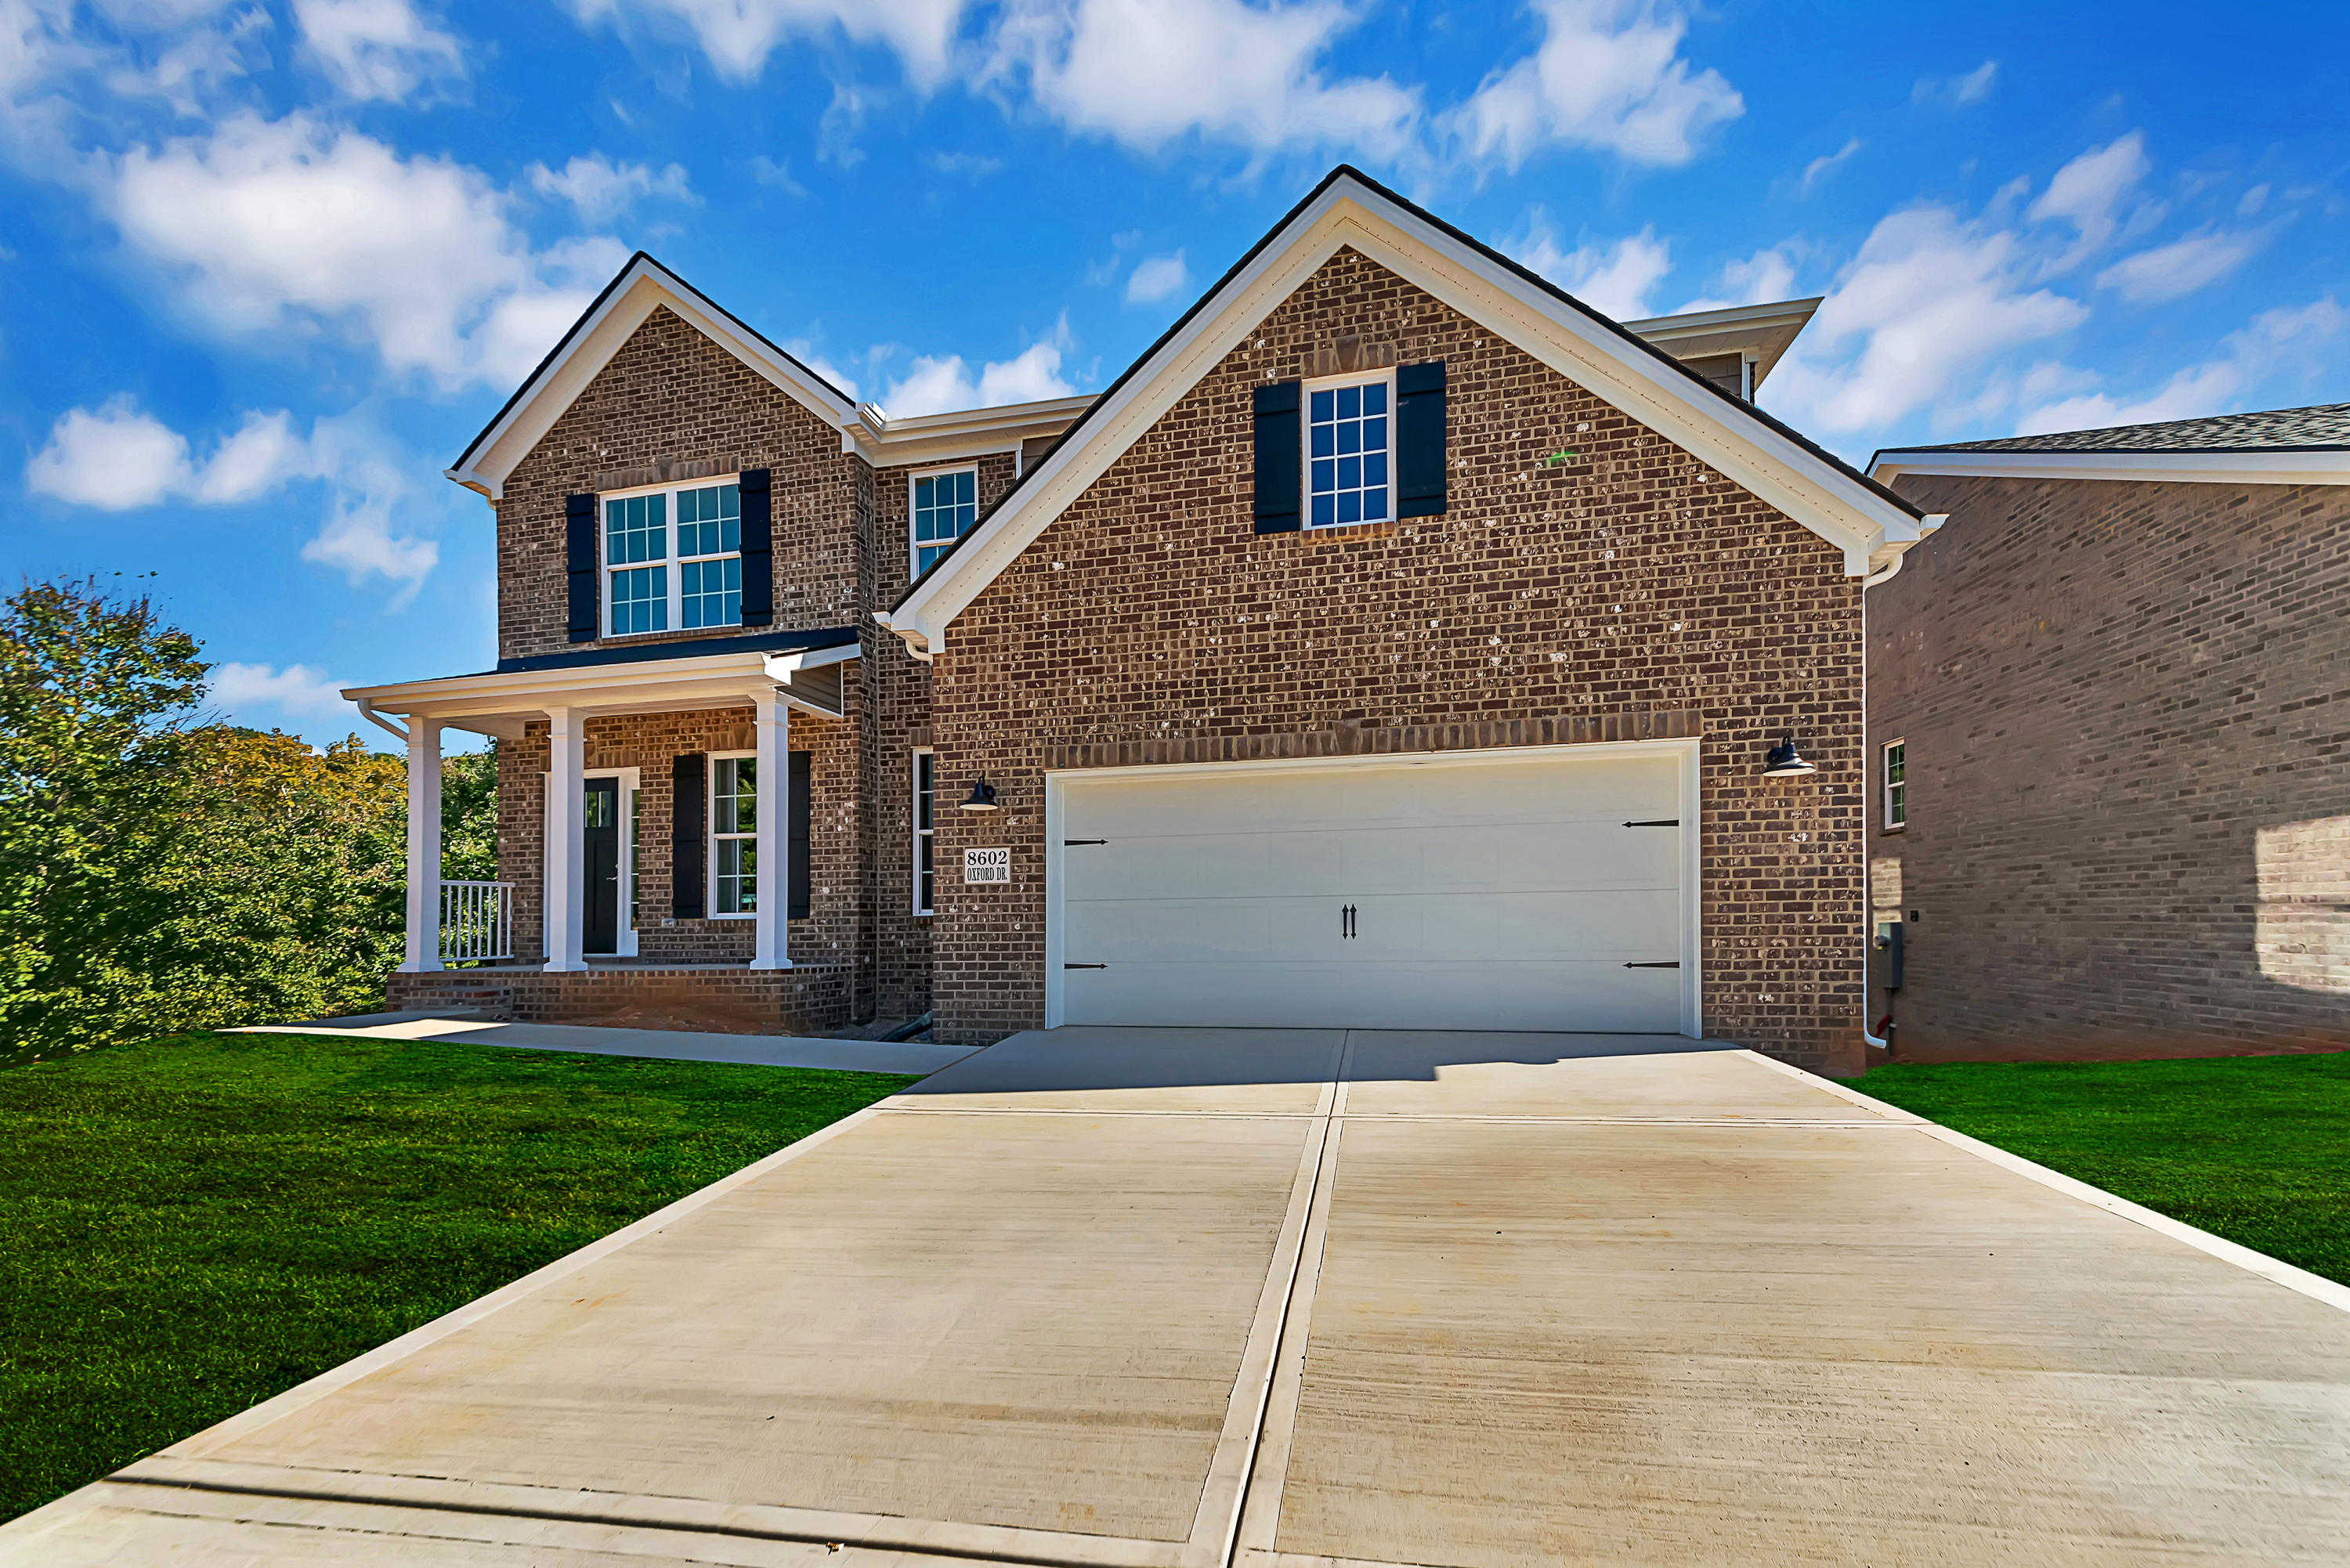 $423,115 - 5Br/4Ba -  for Sale in Lyons Crossing Unit Vi, Knoxville